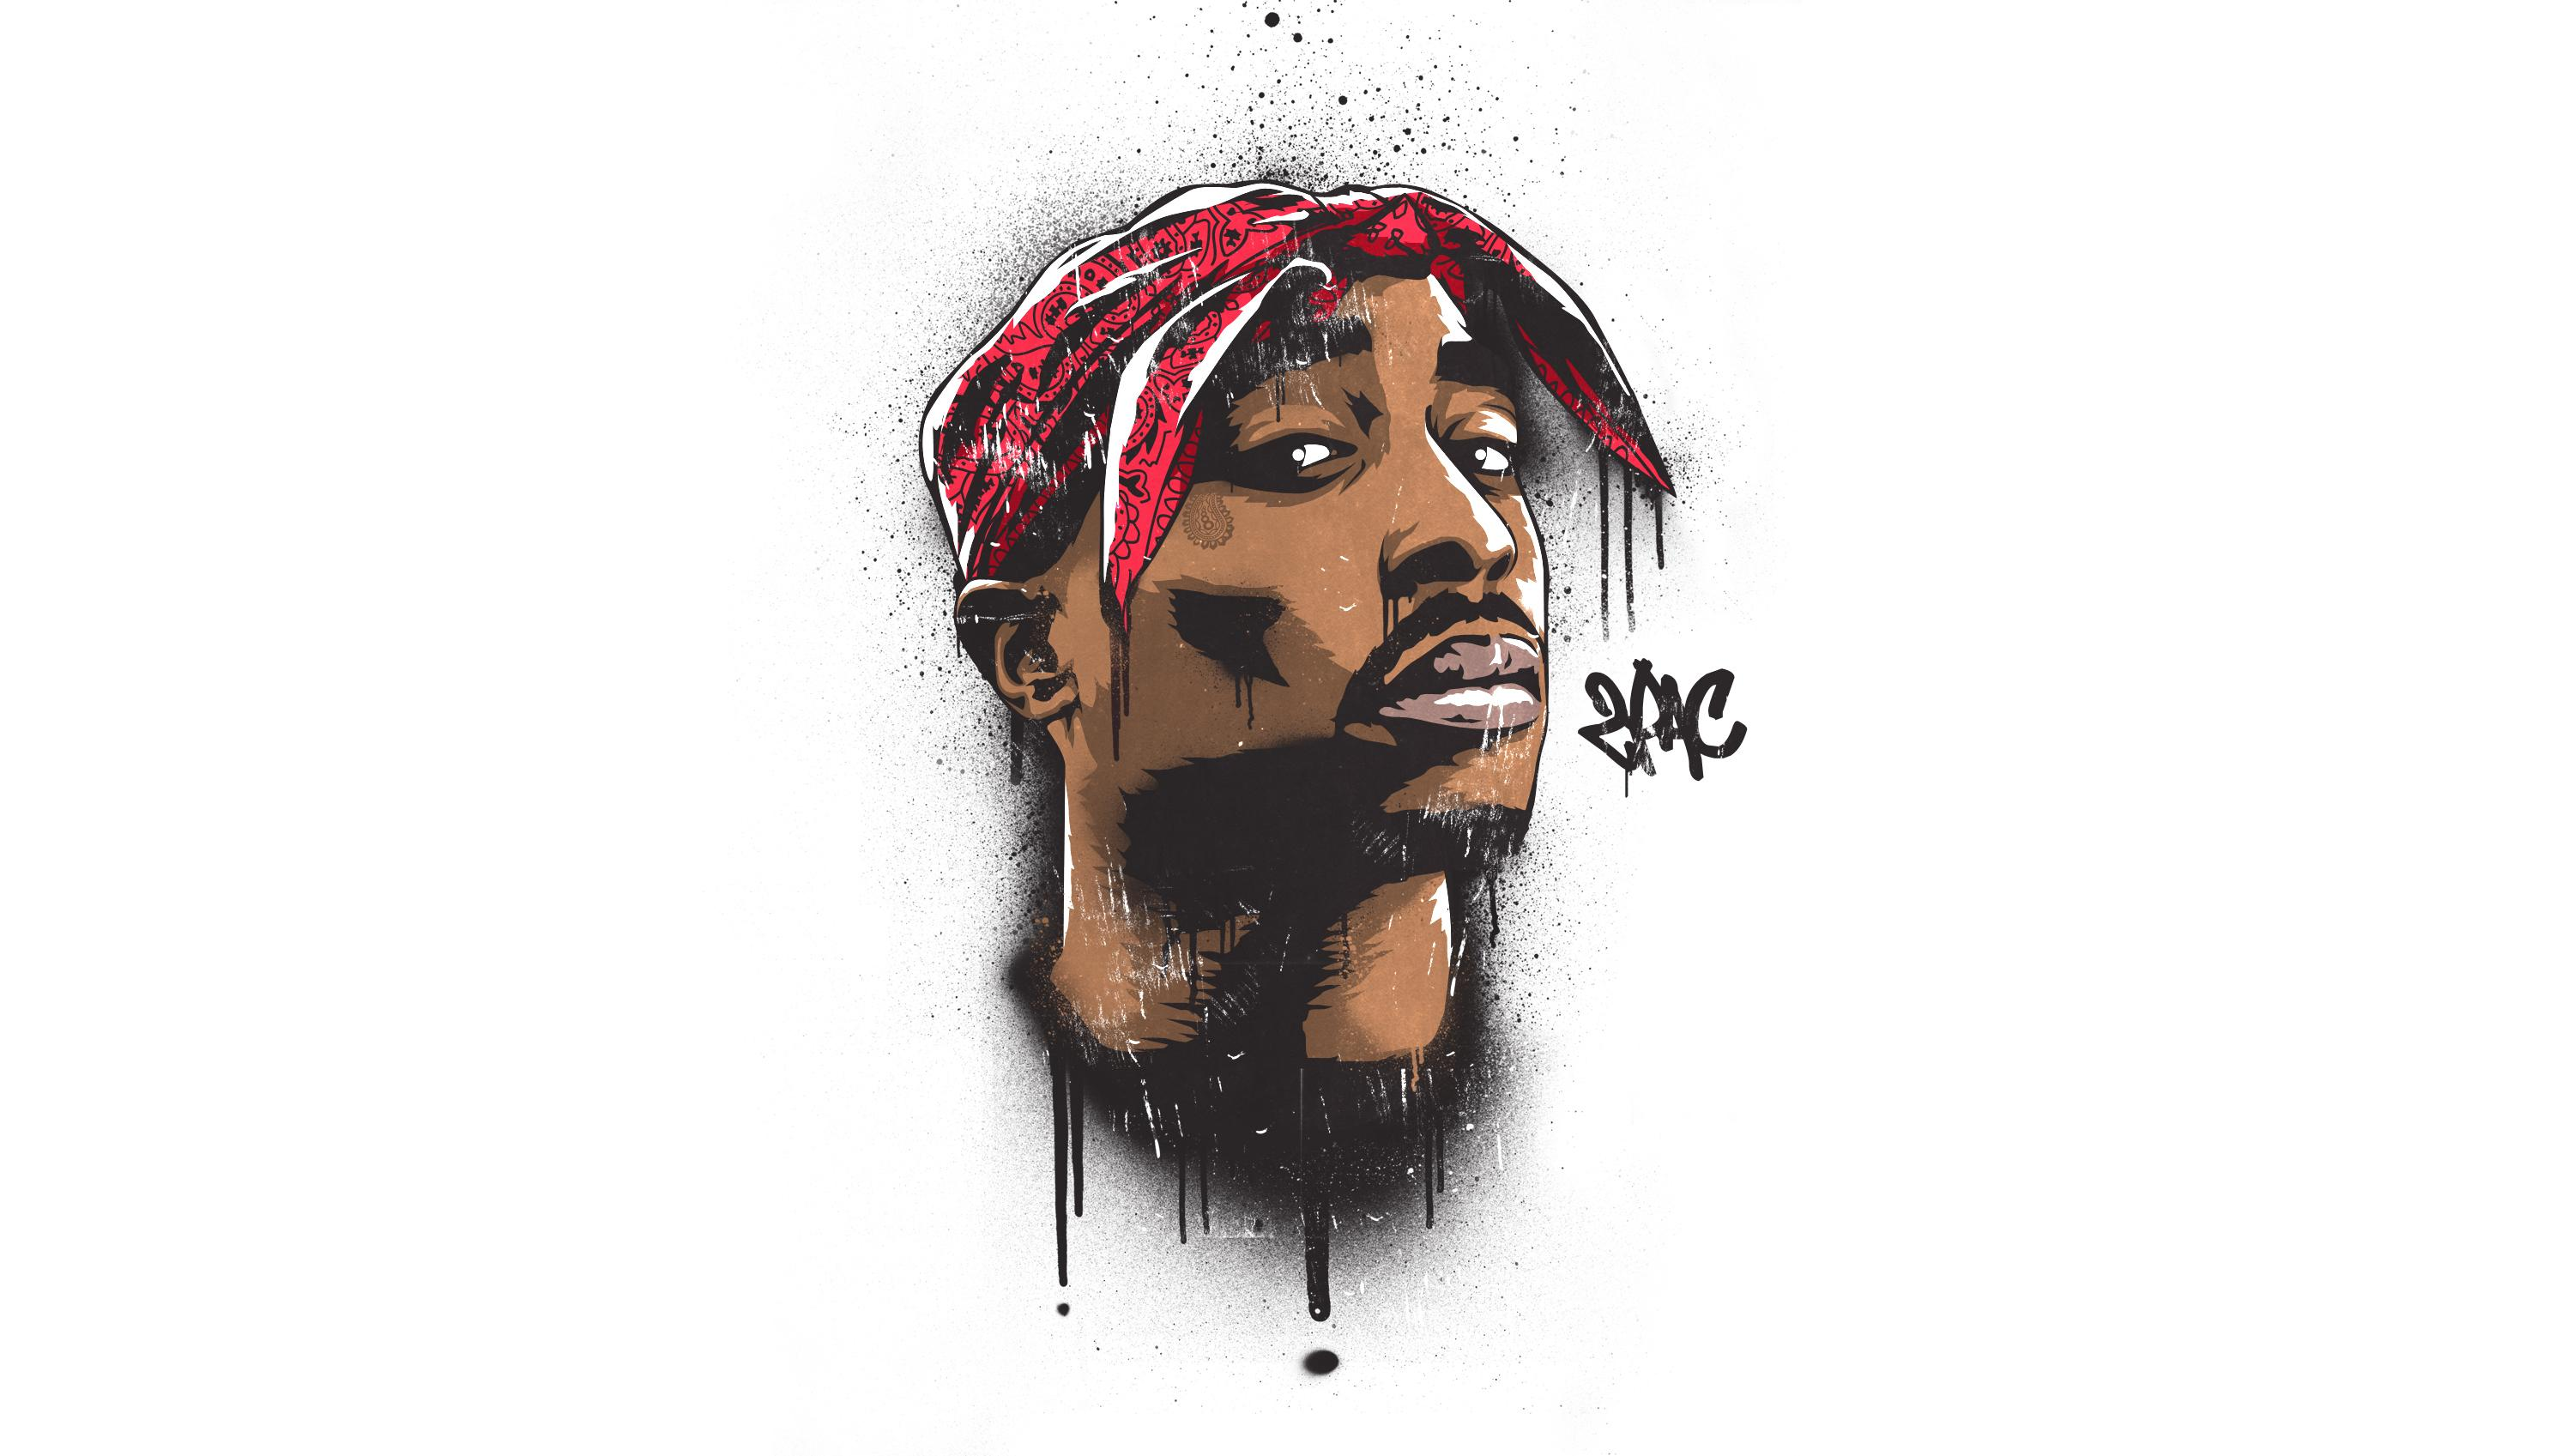 Wallpapers Quotes Inspirational 2pac